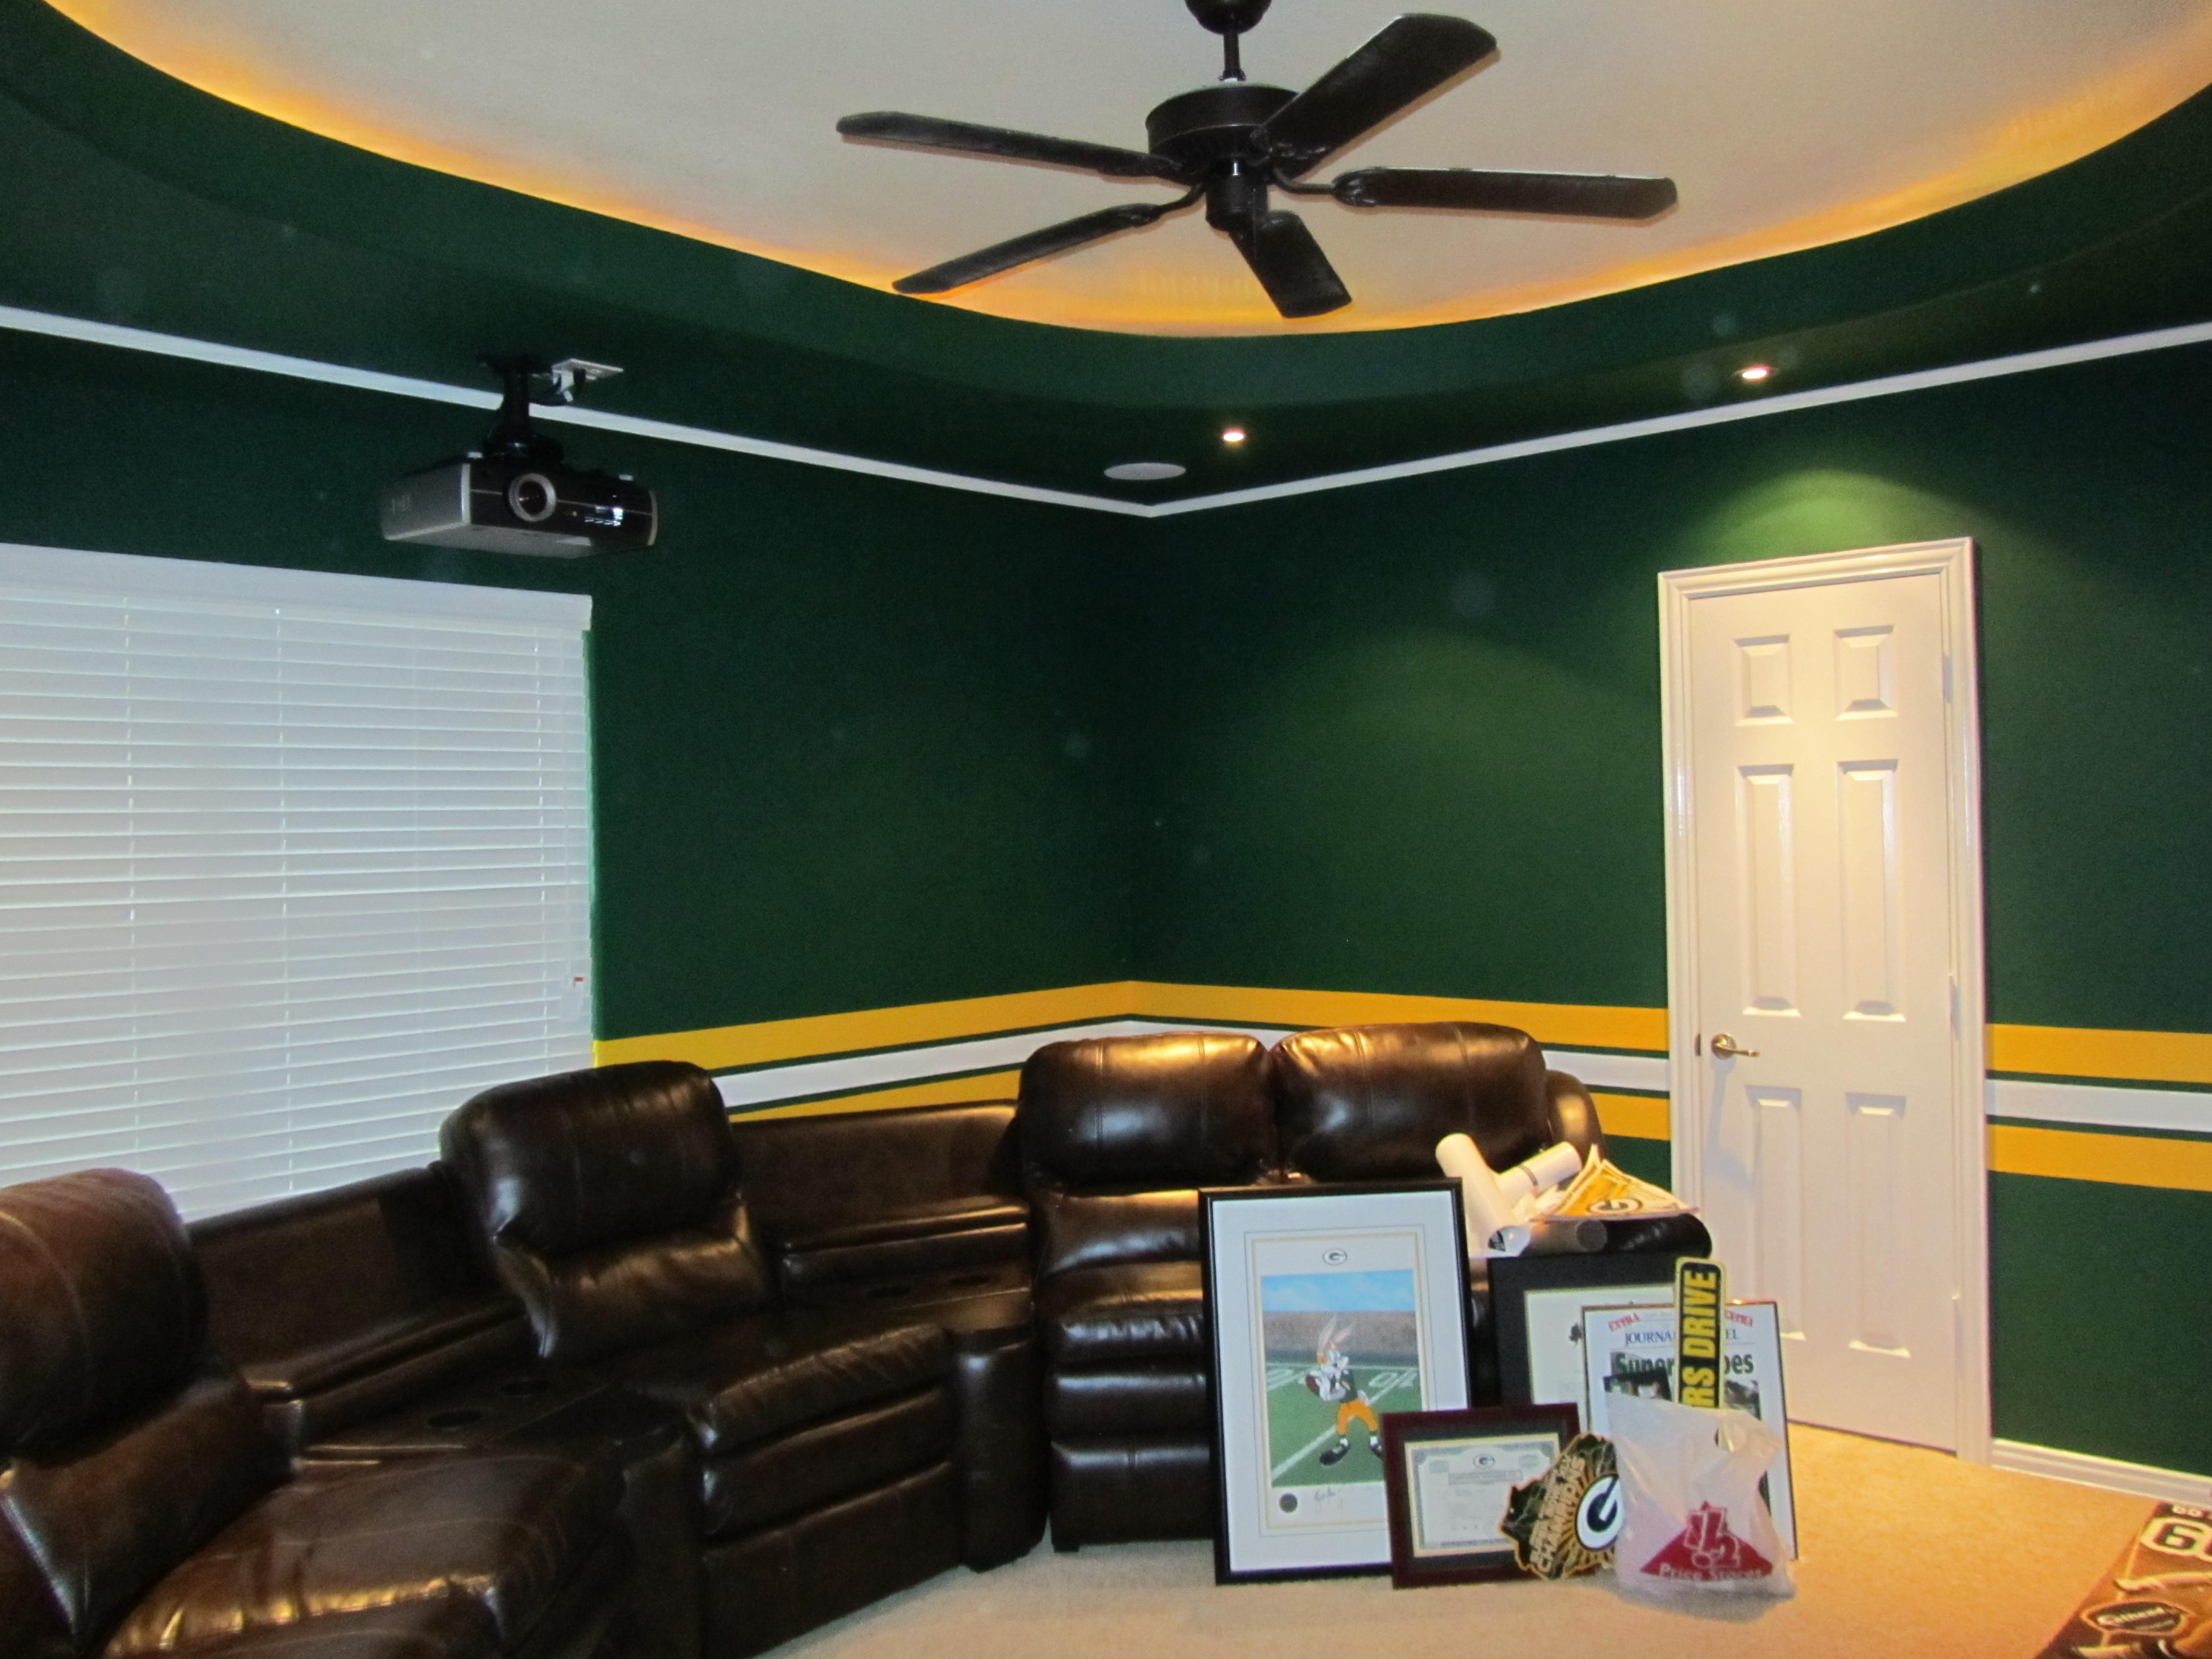 Home Decor Green Bay Fascinating